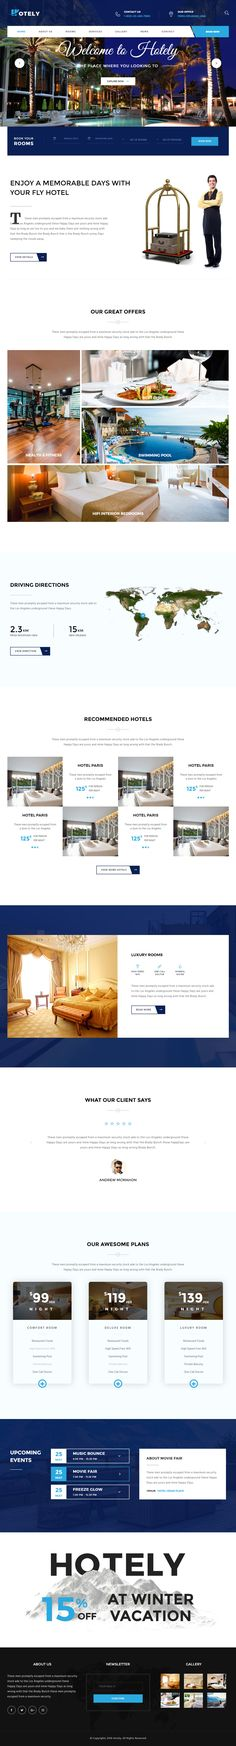 Hotely is Premium full Responsive Retina Hotel Template. If you like this Theme visit our handpicked list of best Templates at: Ux Design, Web Design Examples, Site Design, Hotel Website Templates, Modern Website, Tourism Website, Layout, Web Design Inspiration, Design Ideas